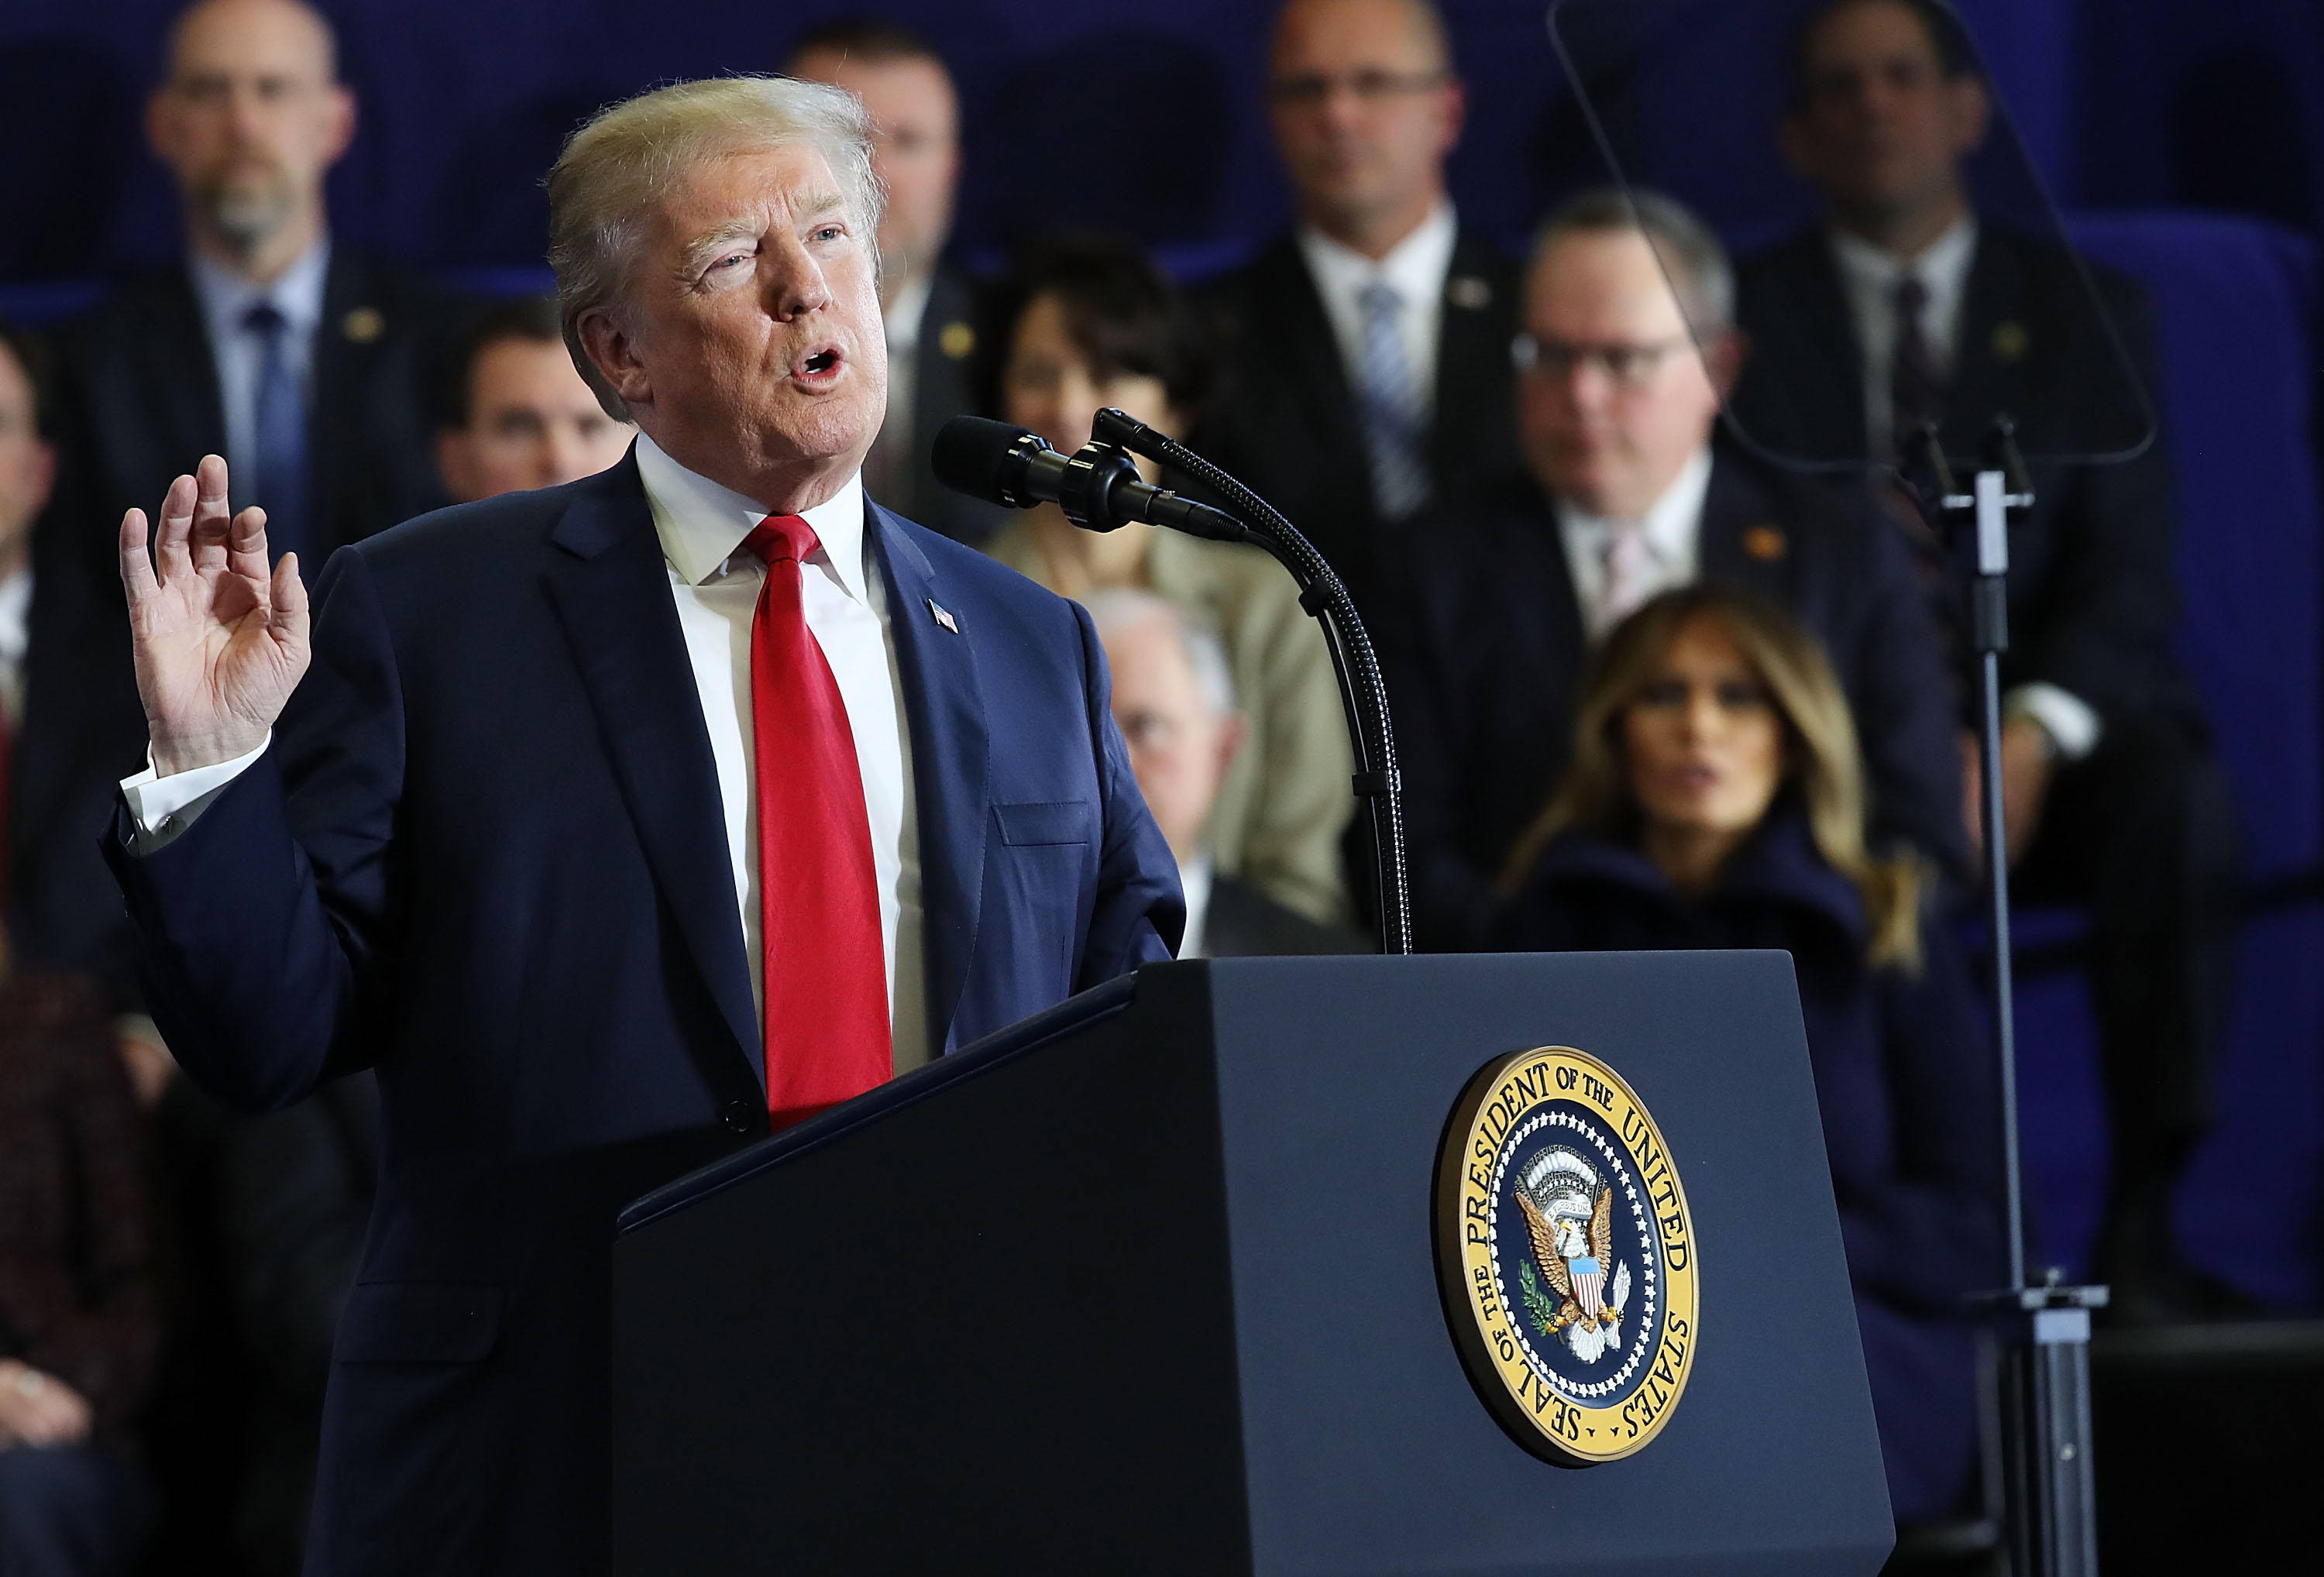 New Hampshire Election 2020.In New Hampshire And Iowa Trump Eyes 2020 Re Election As